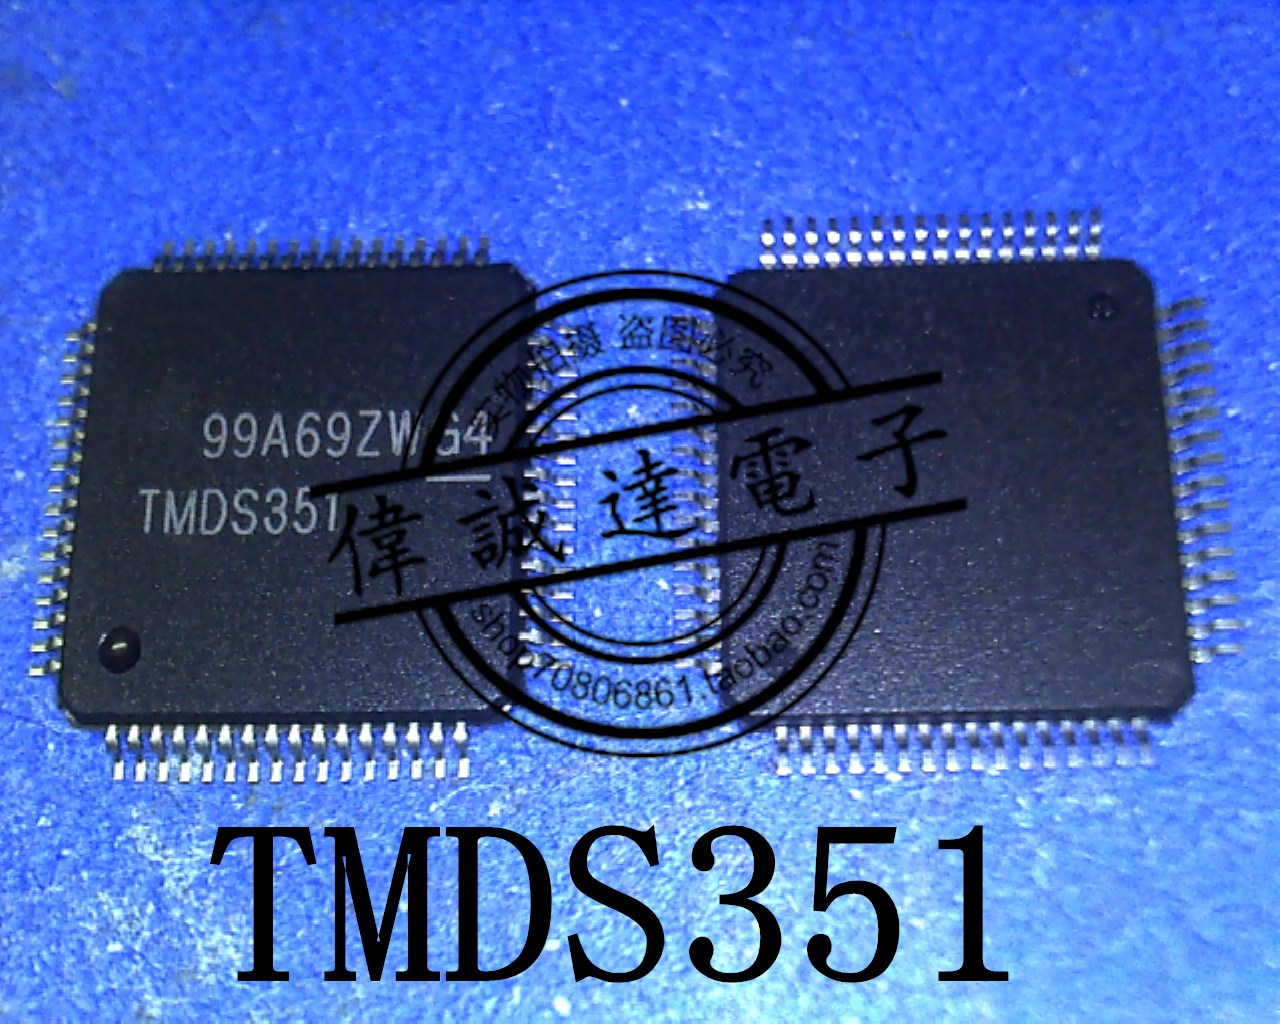 Brand new original genuine spot TMDS351 LCD screen chip [buy] image